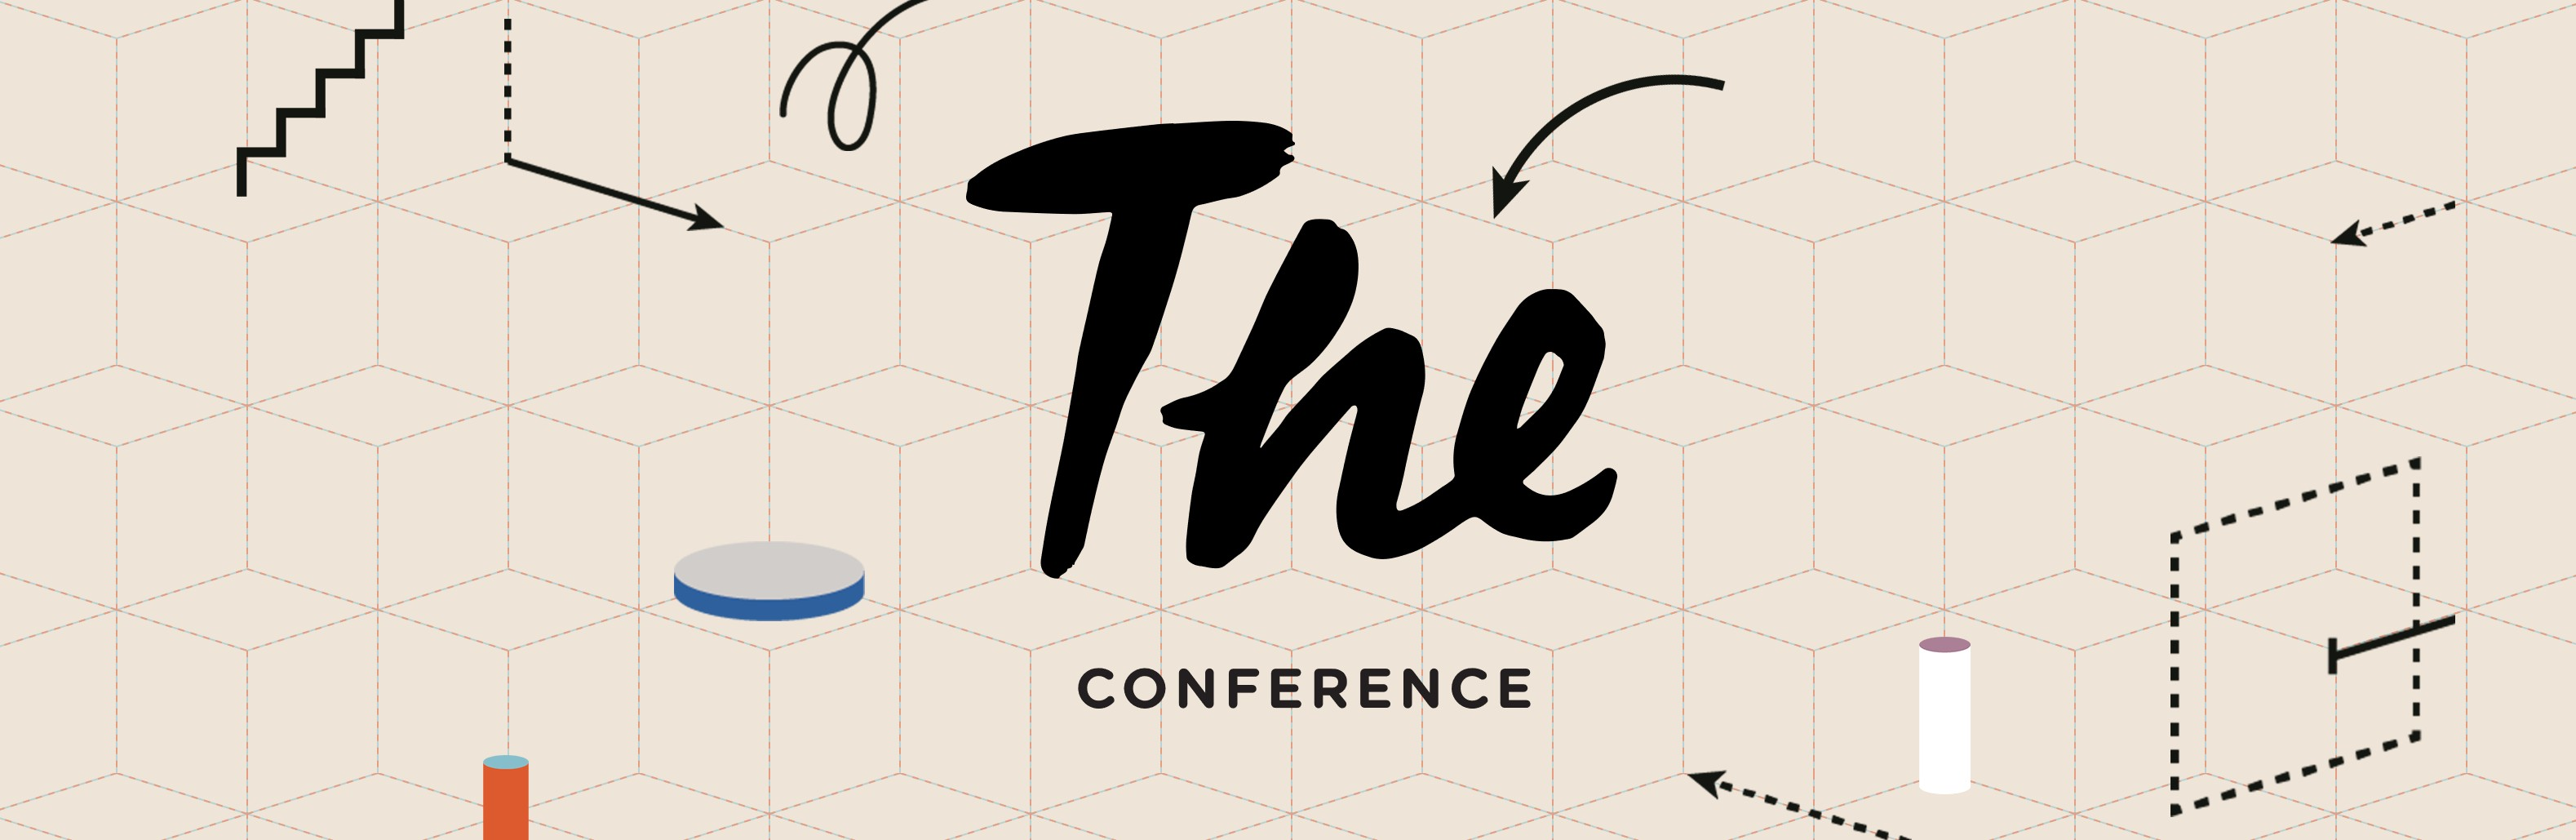 theConf2016